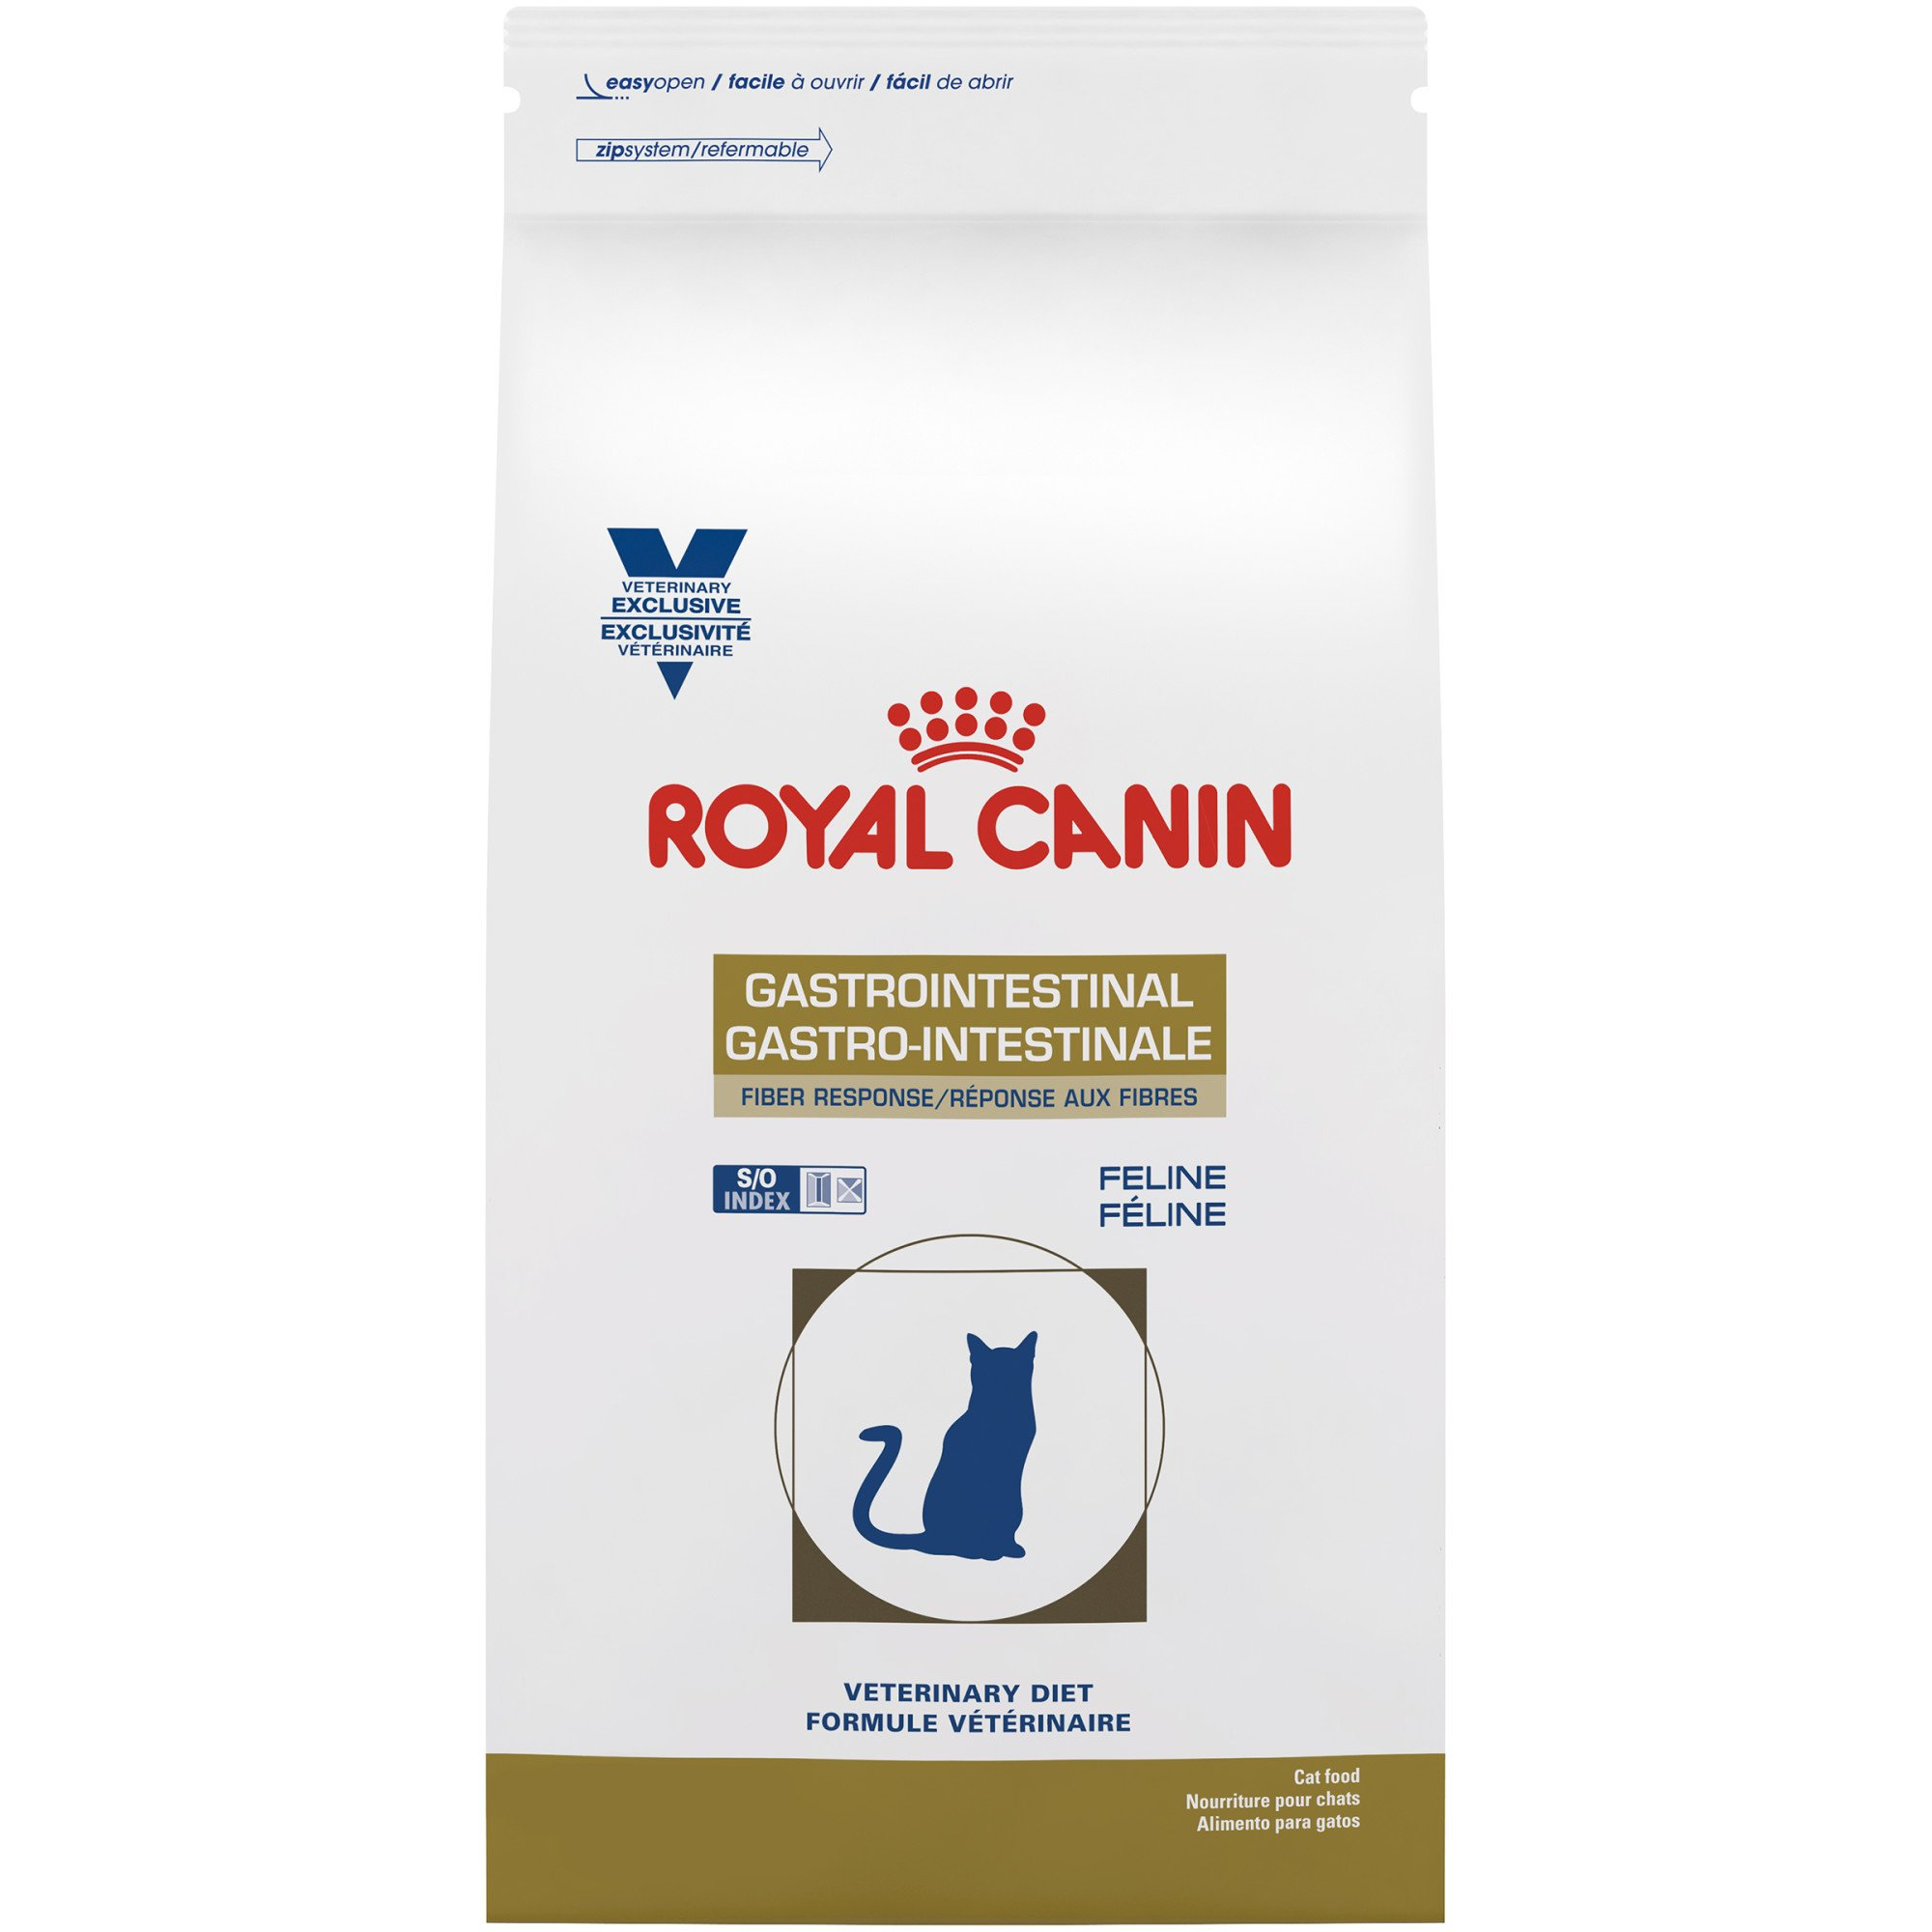 royal canin veterinary diet feline gastrointestinal fiber. Black Bedroom Furniture Sets. Home Design Ideas